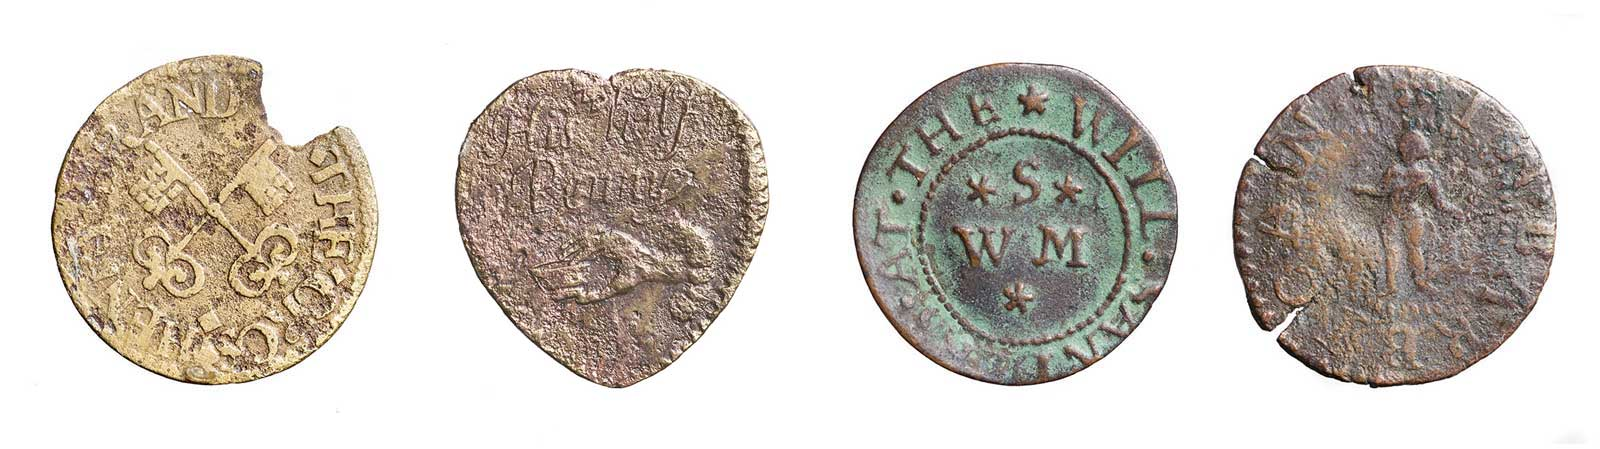 17th century trade tokens.